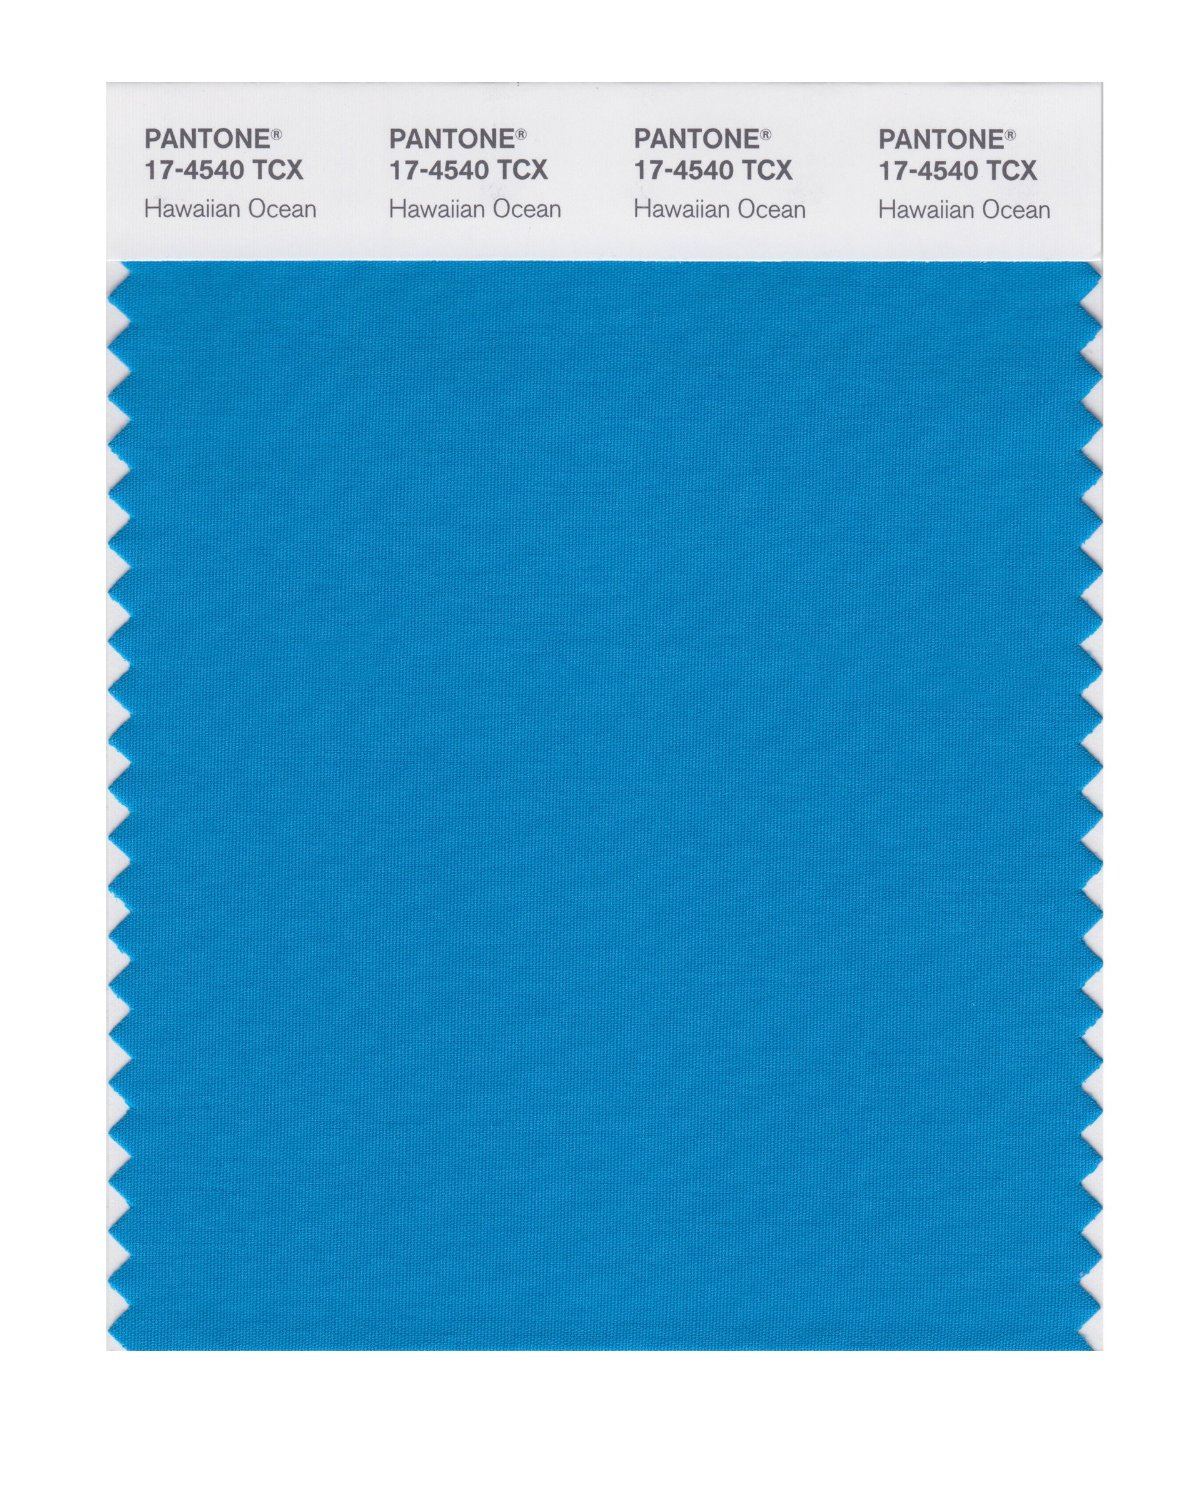 Pantone Smart Swatch 17-4540 Hawaiian Ocean